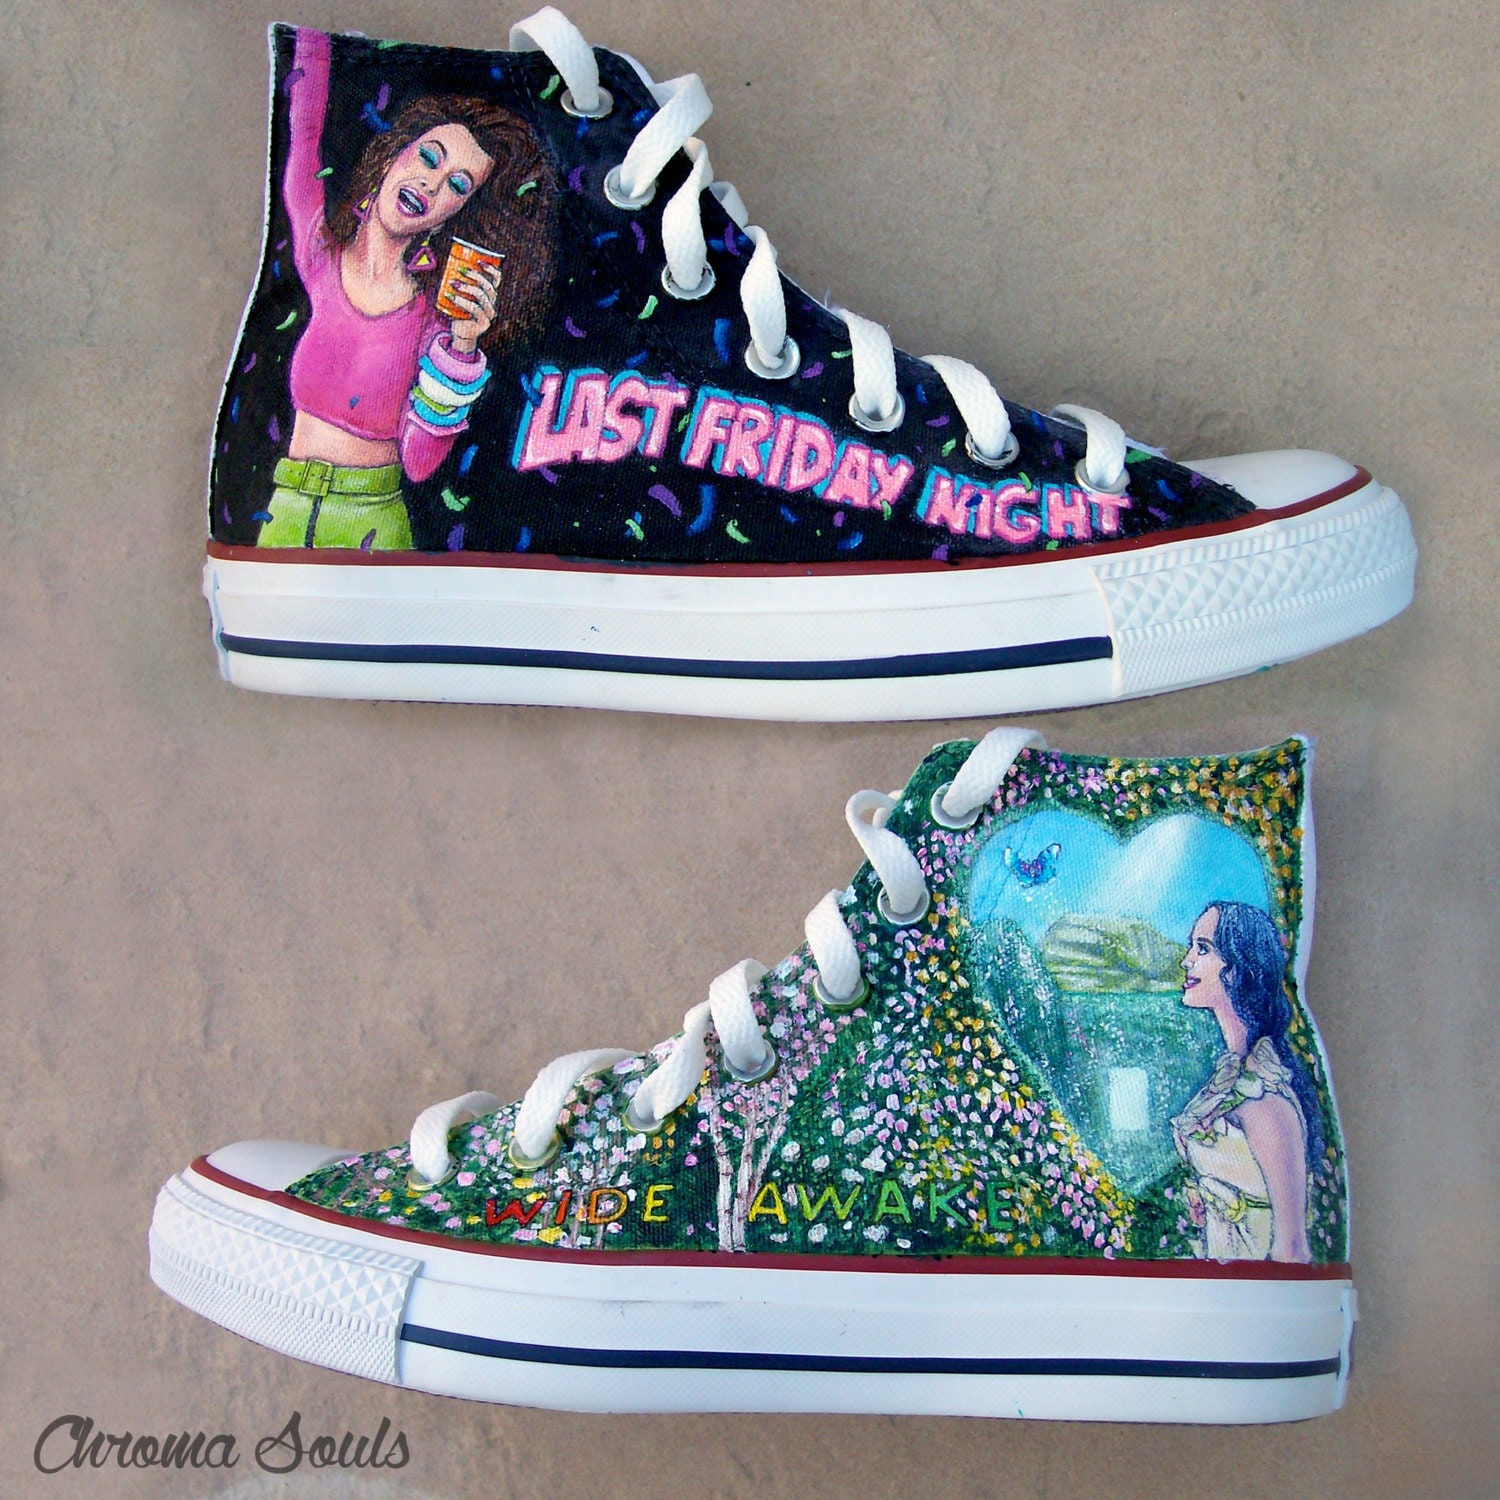 Katy Perry Shoes by ChromaSouls on Etsy Katy Perry Shoes